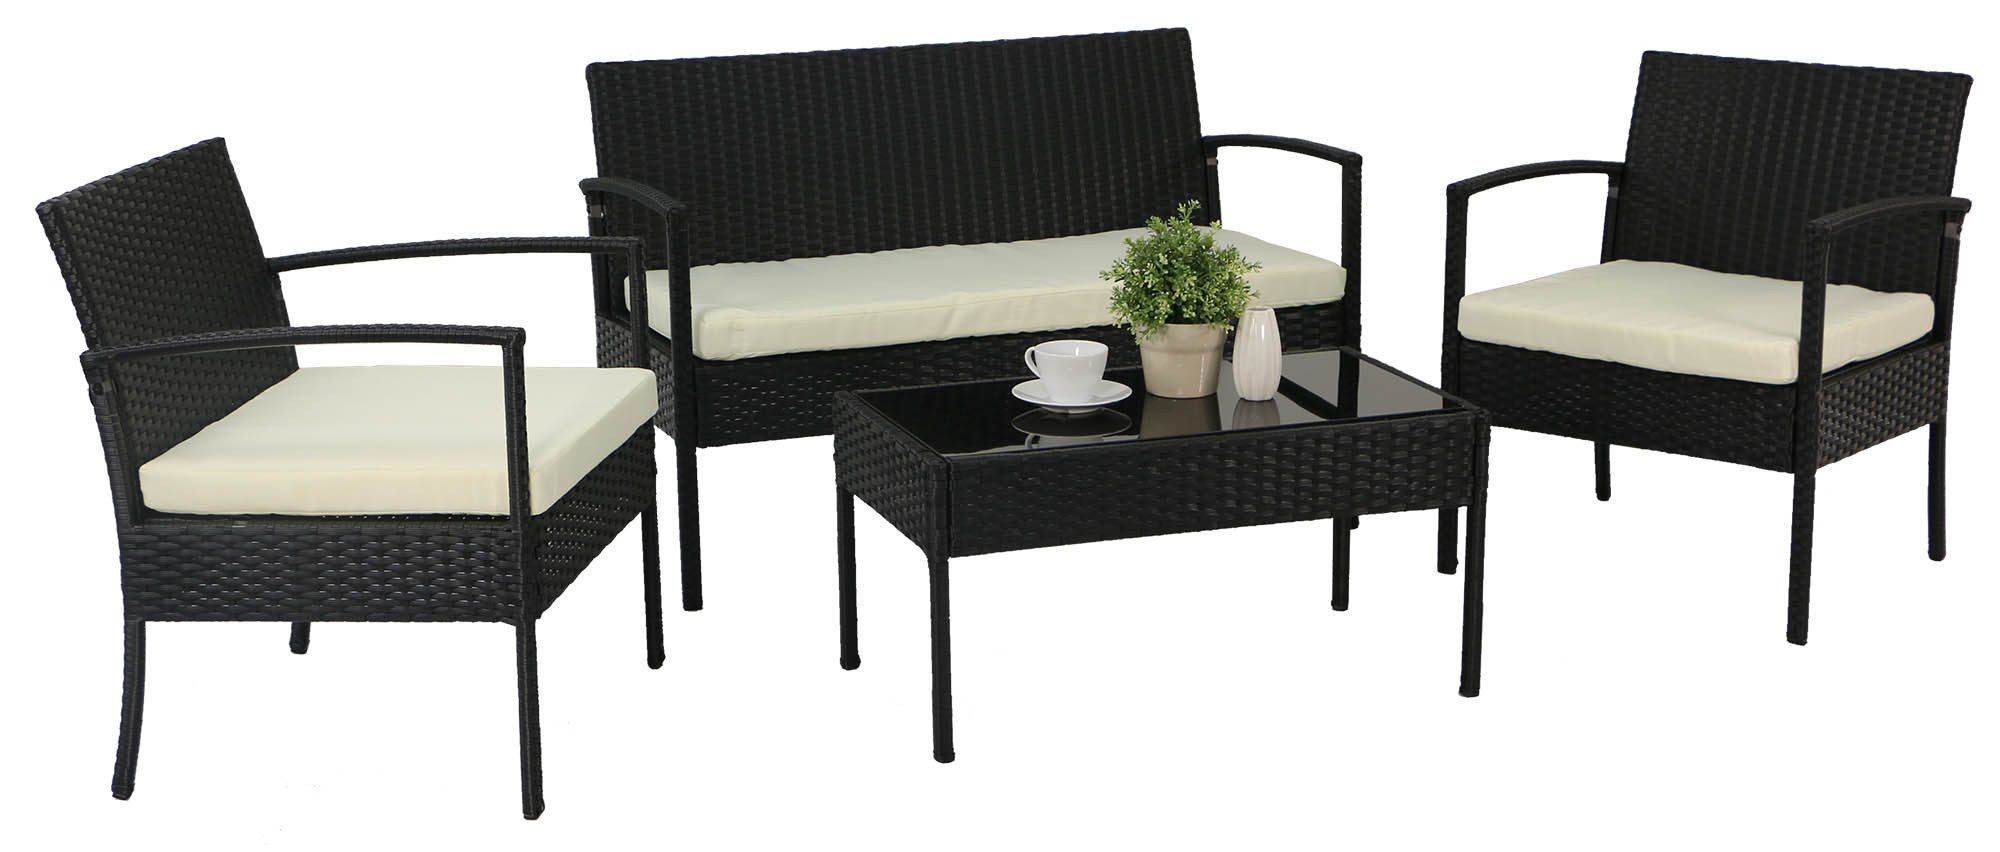 Lazio Sofa Set Black Furniture Home D Cor Fortytwo